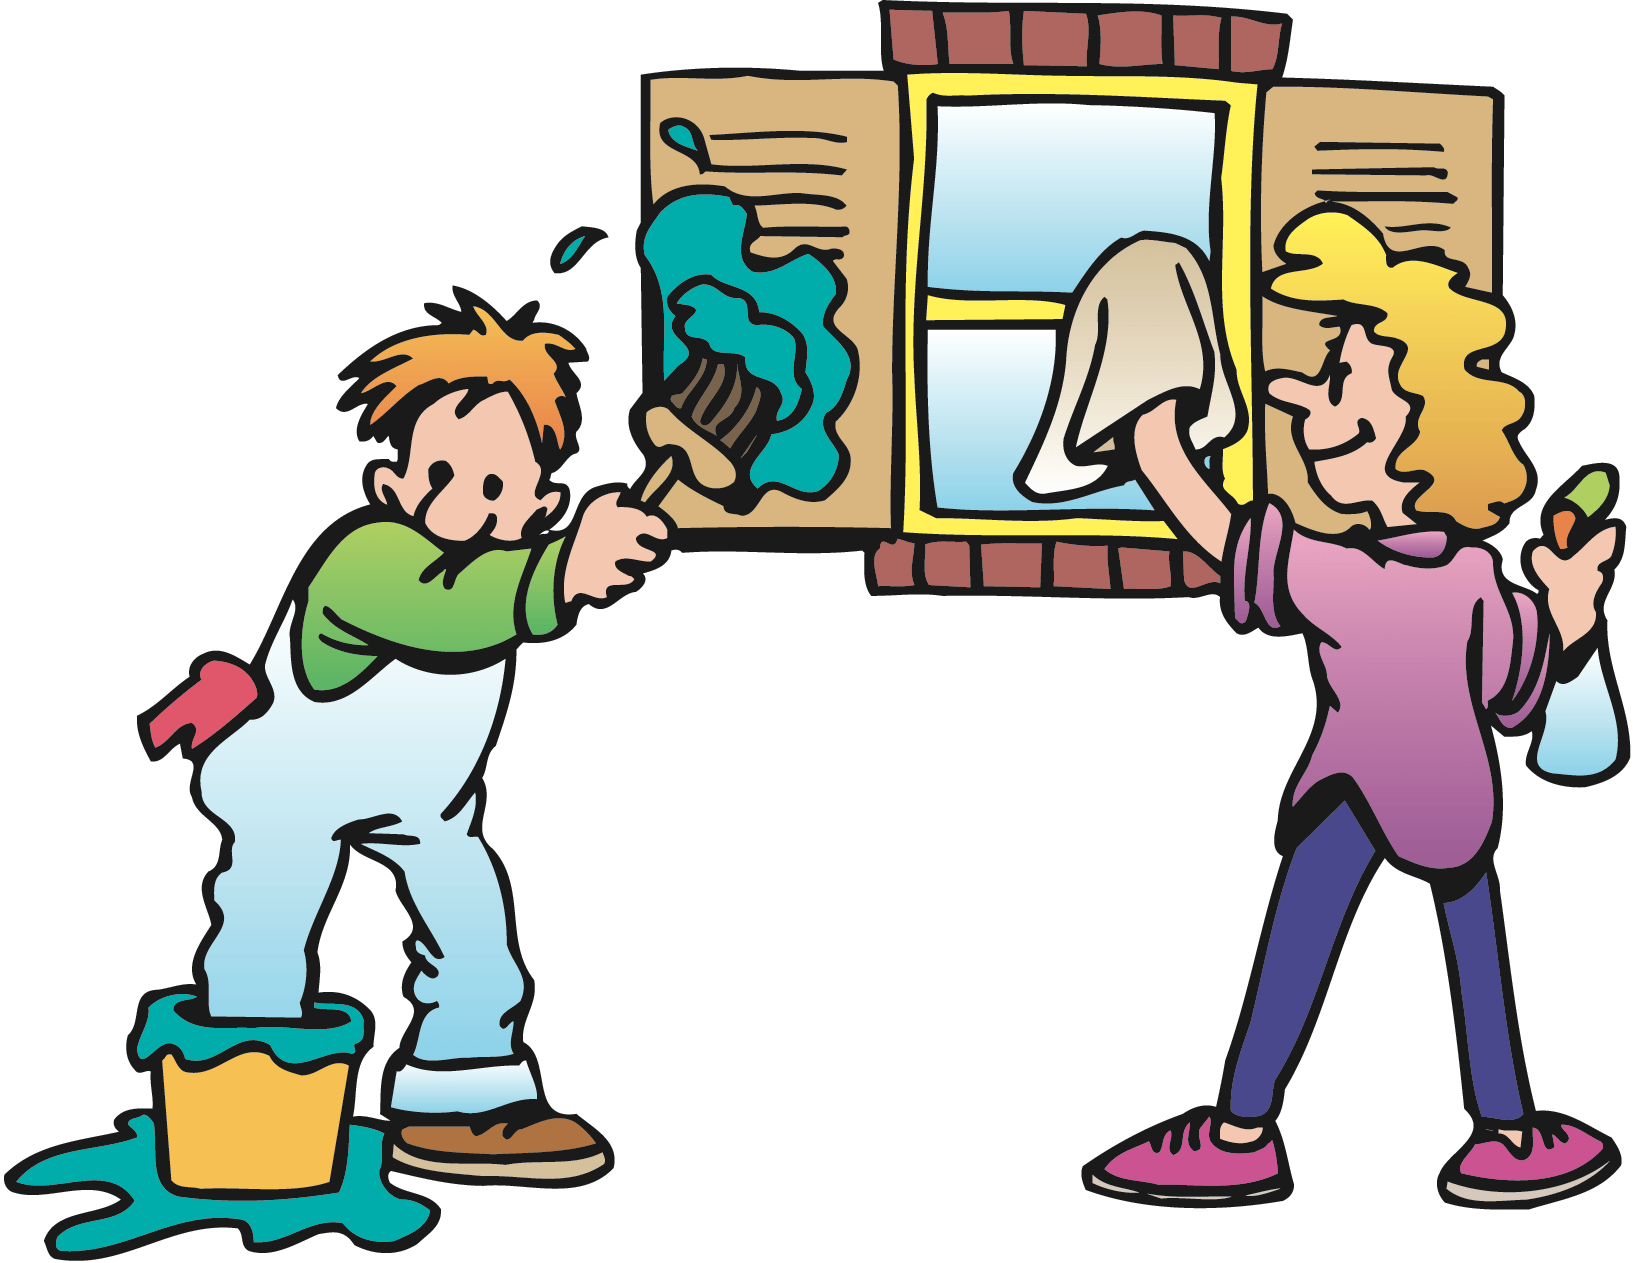 Cleaners clipart images » Clipart Portal.